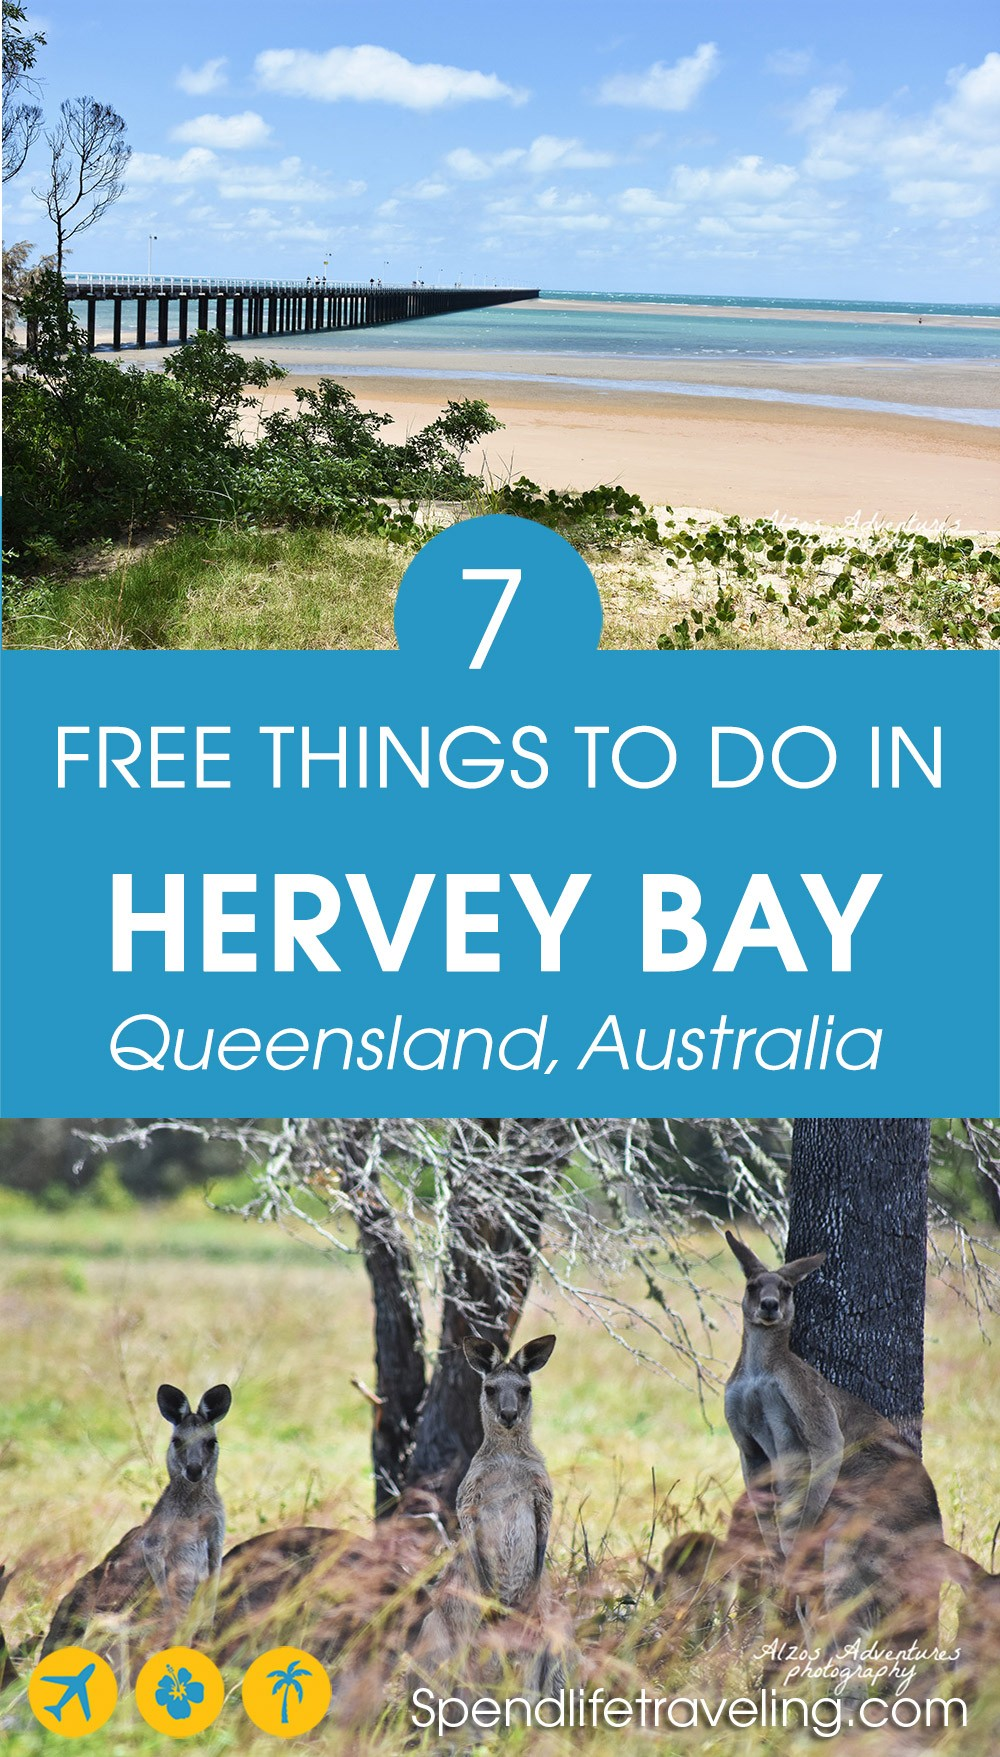 Traveling on a budget? These are some great free things to do in Hervey Bay, Queensland, Australia. #HerveyBay #visitQueensland #travelQueensland